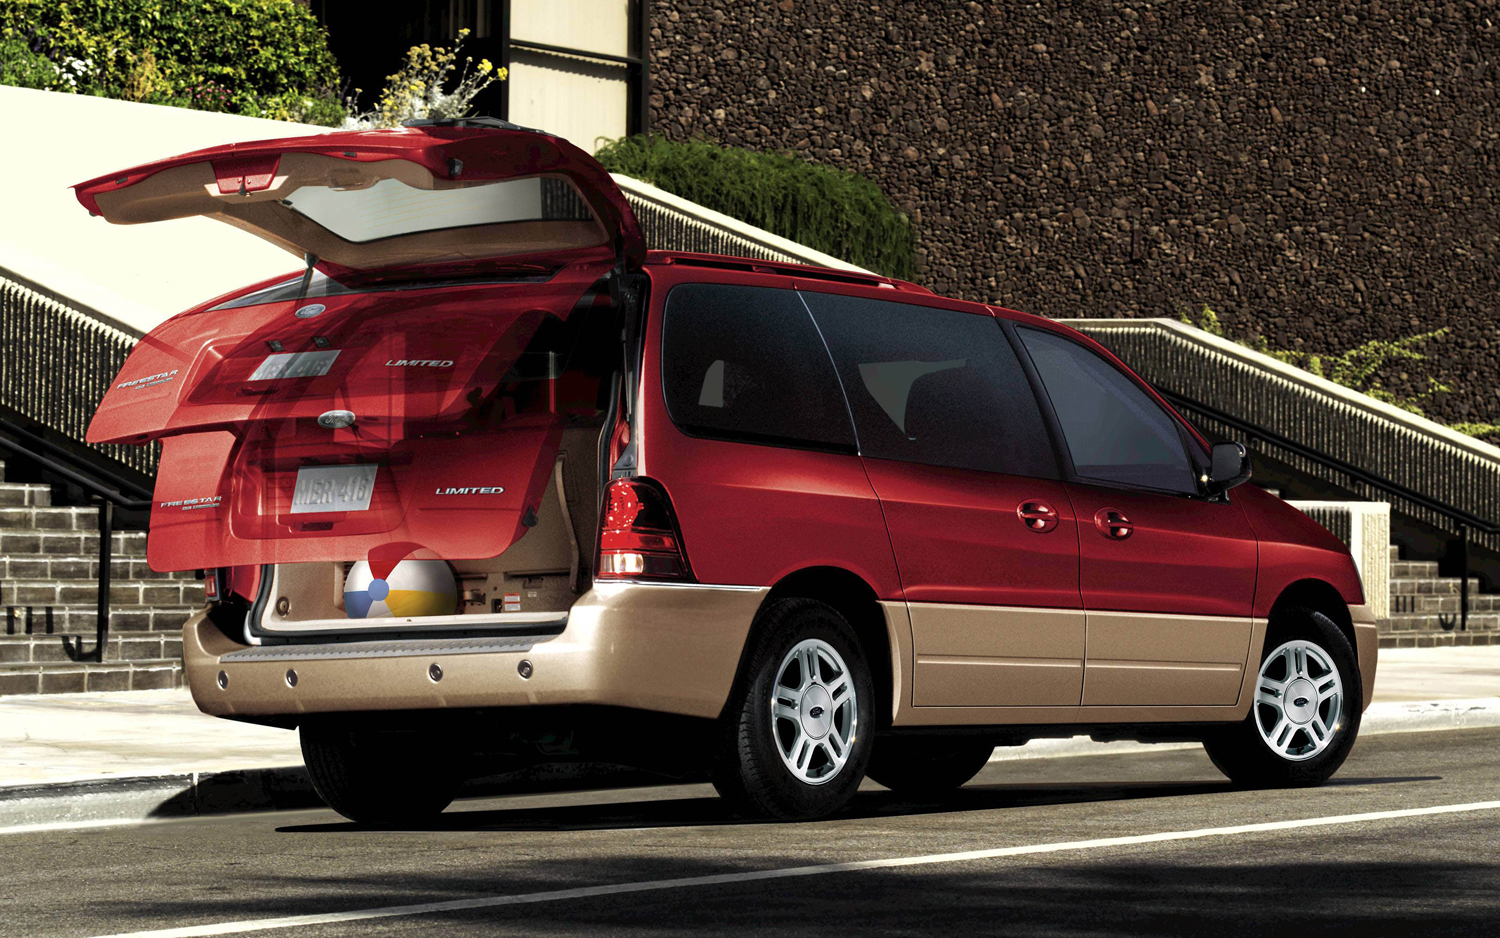 Ford Freestar red #3